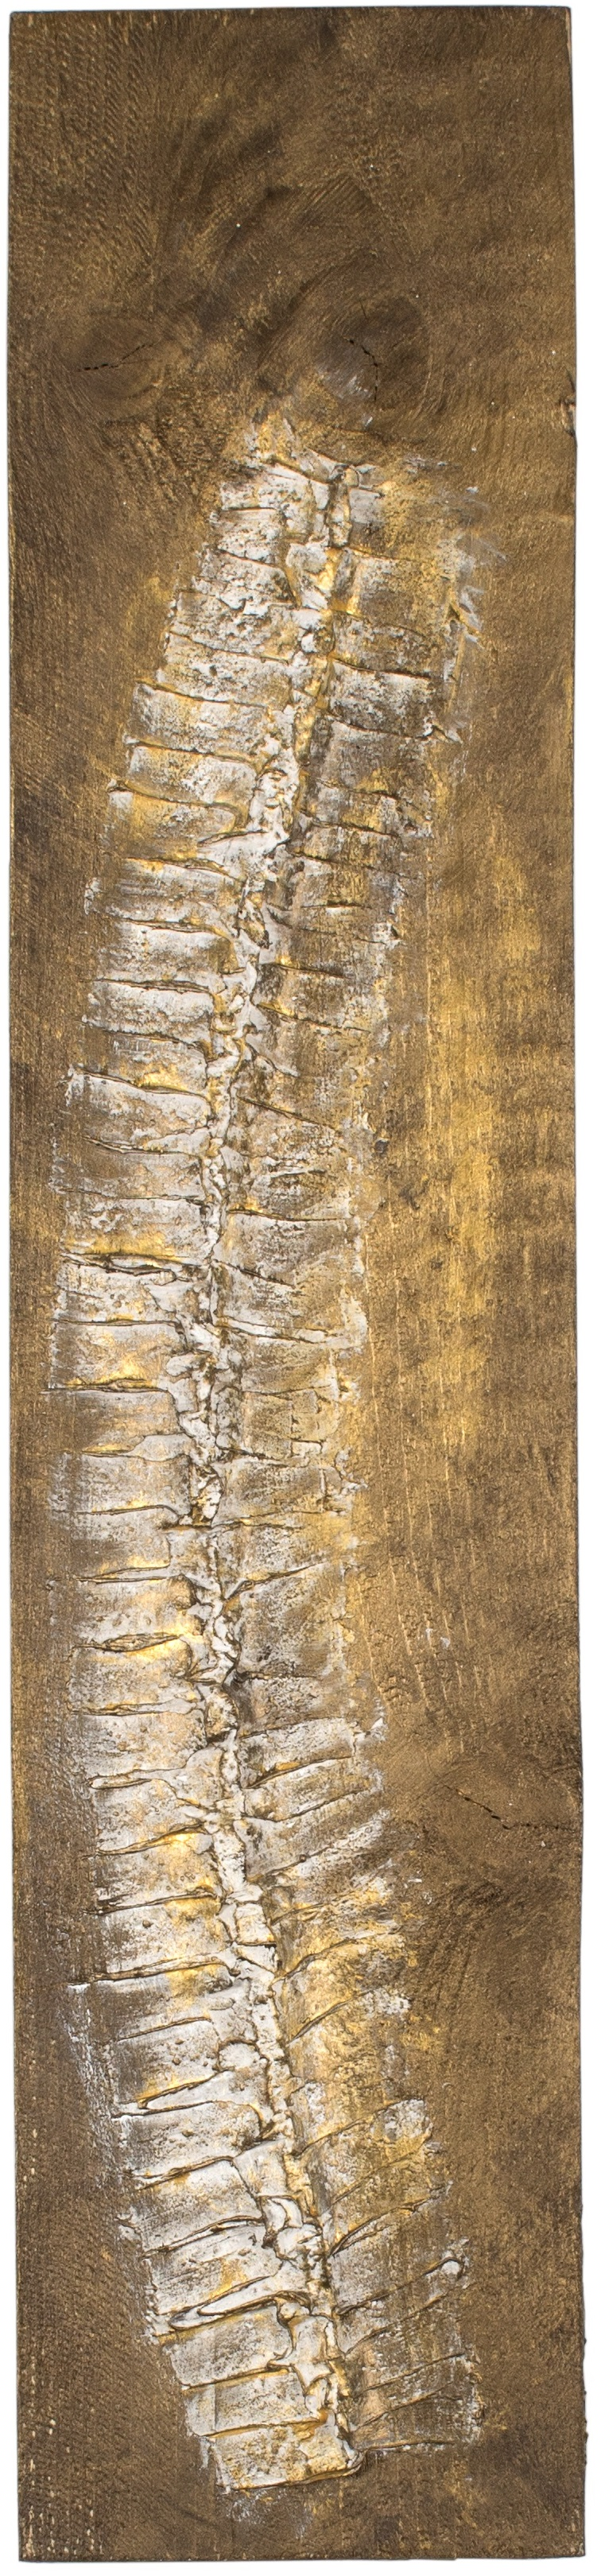 VERTEBRAE#7 -Plaster and acrylic on rough spruce board, 17x80cm - AVAILABLE